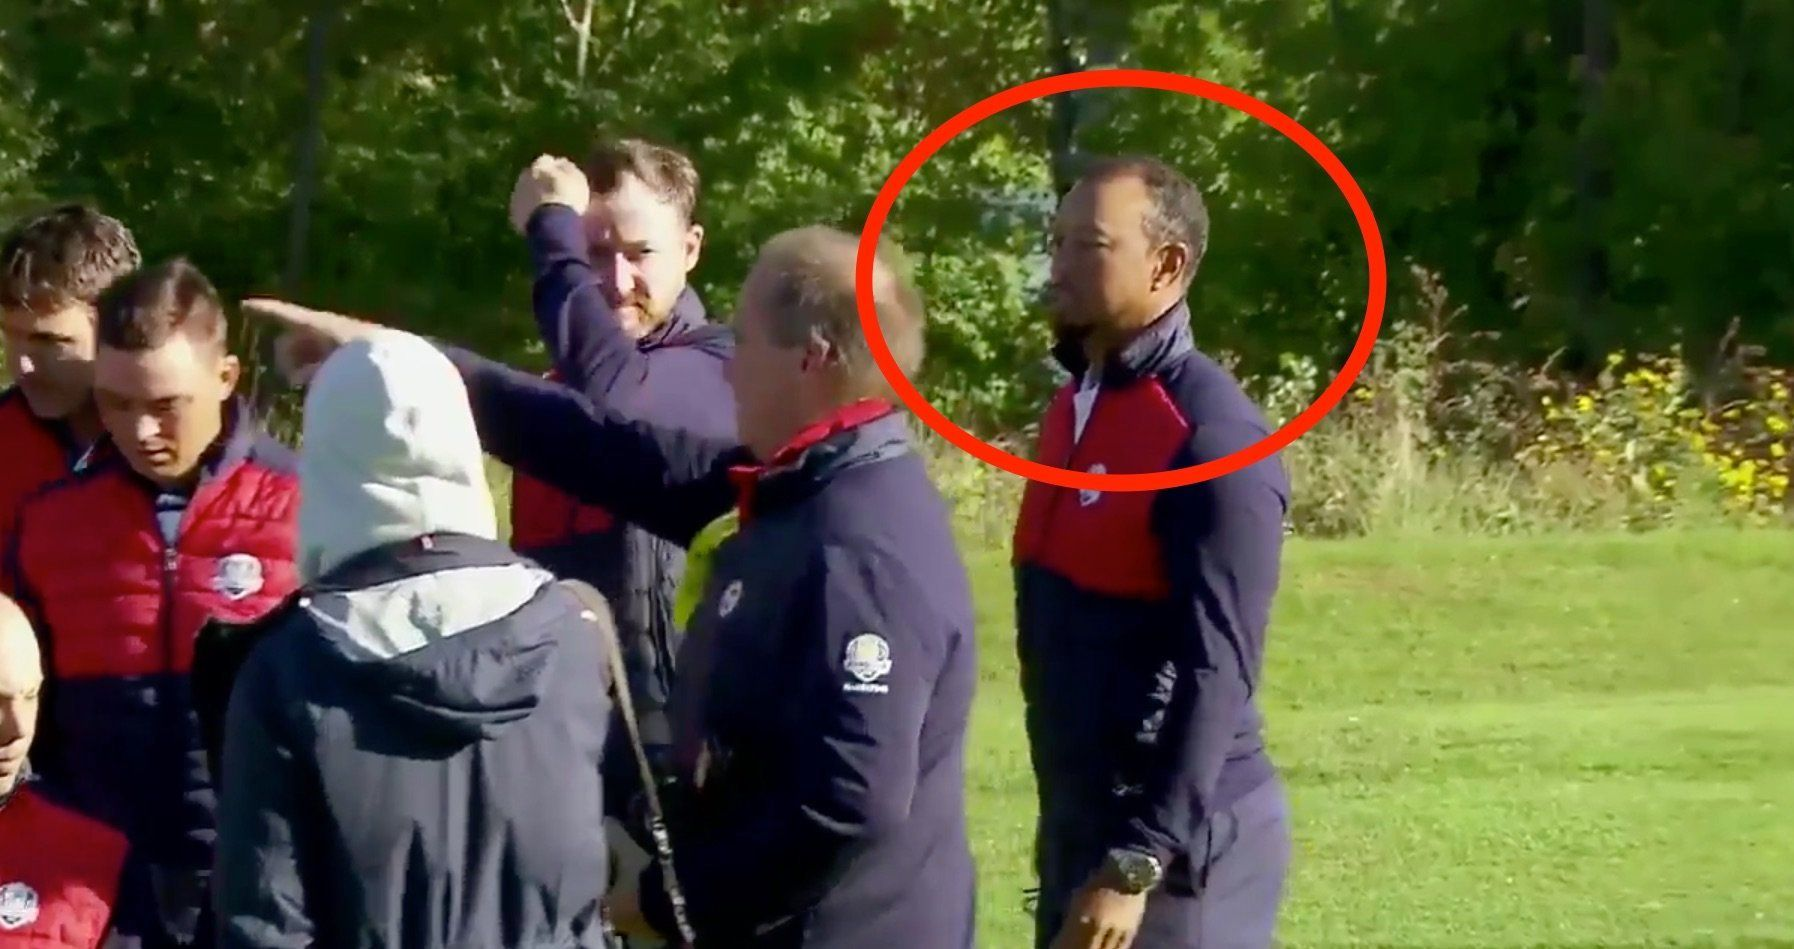 Tiger Woods chased away from Ryder Cup group portrait